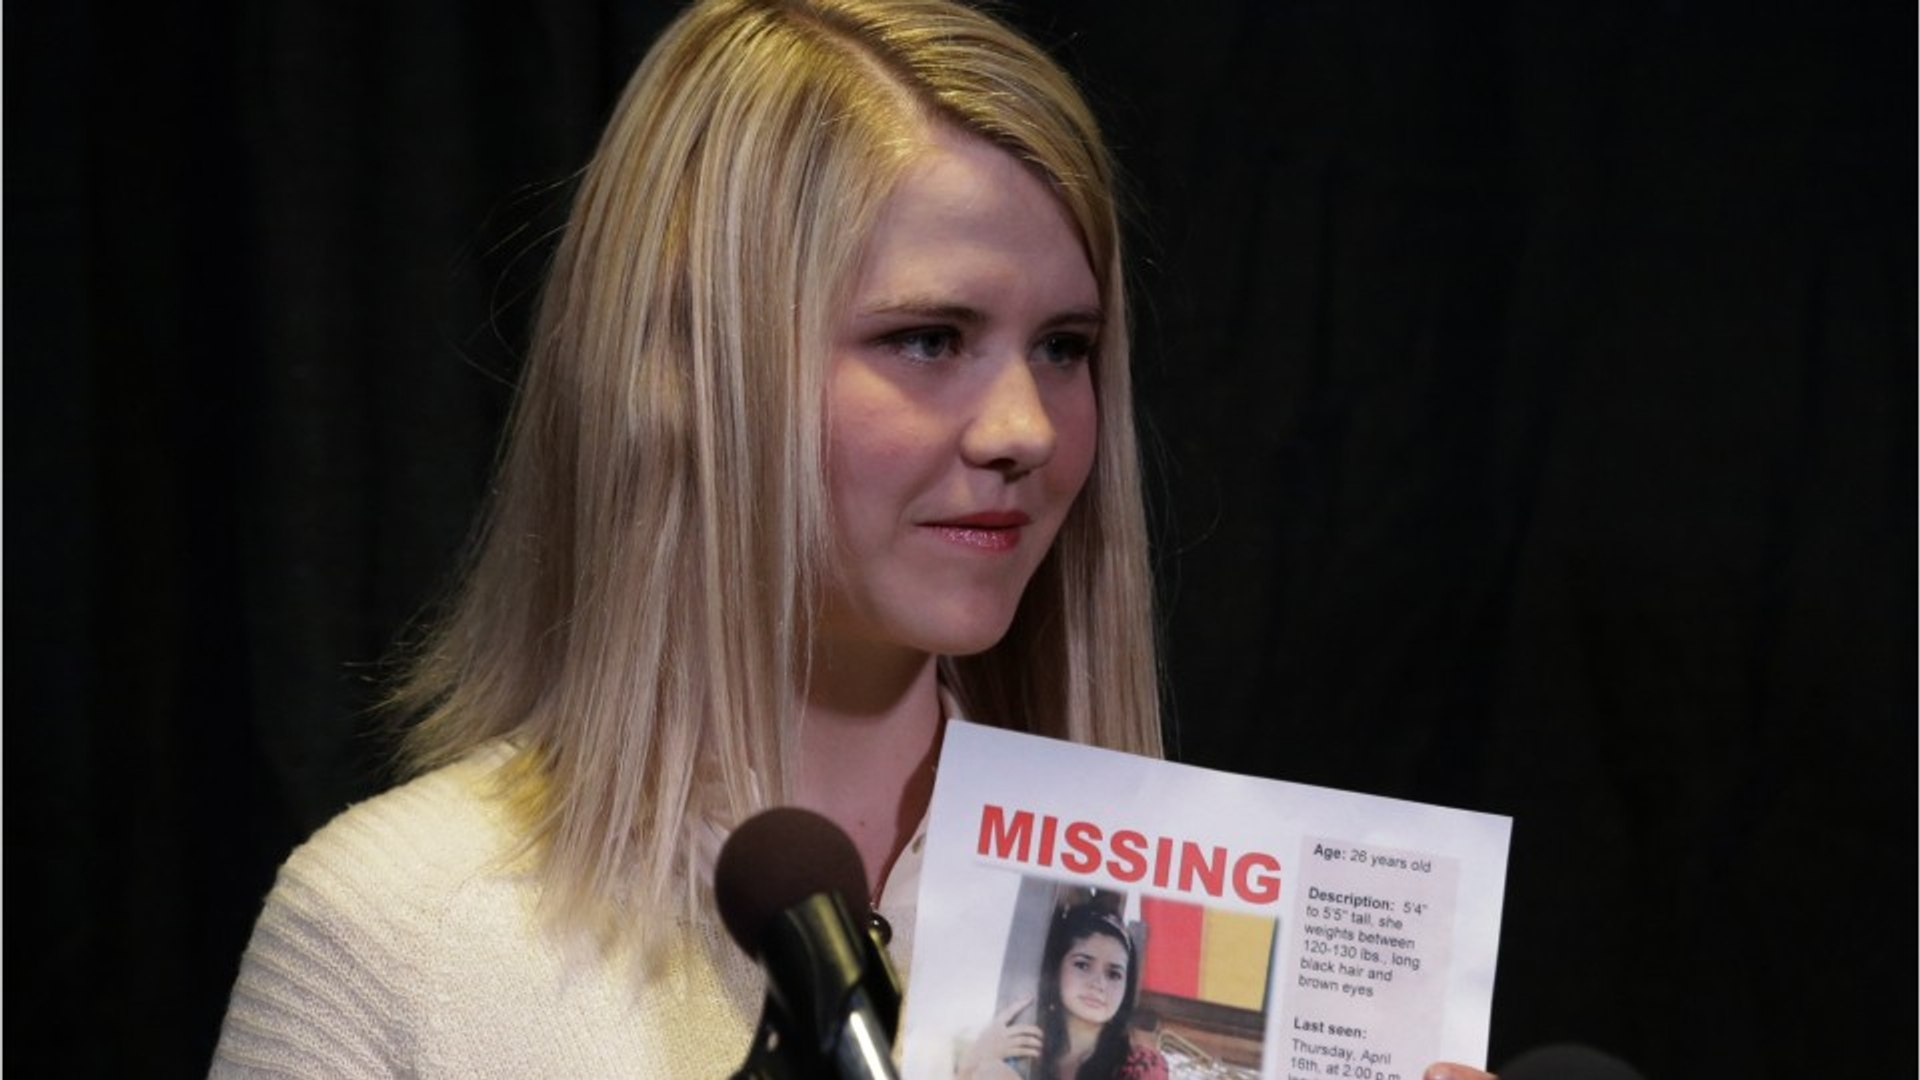 Elizabeth Smart Story Headed To Lifetime